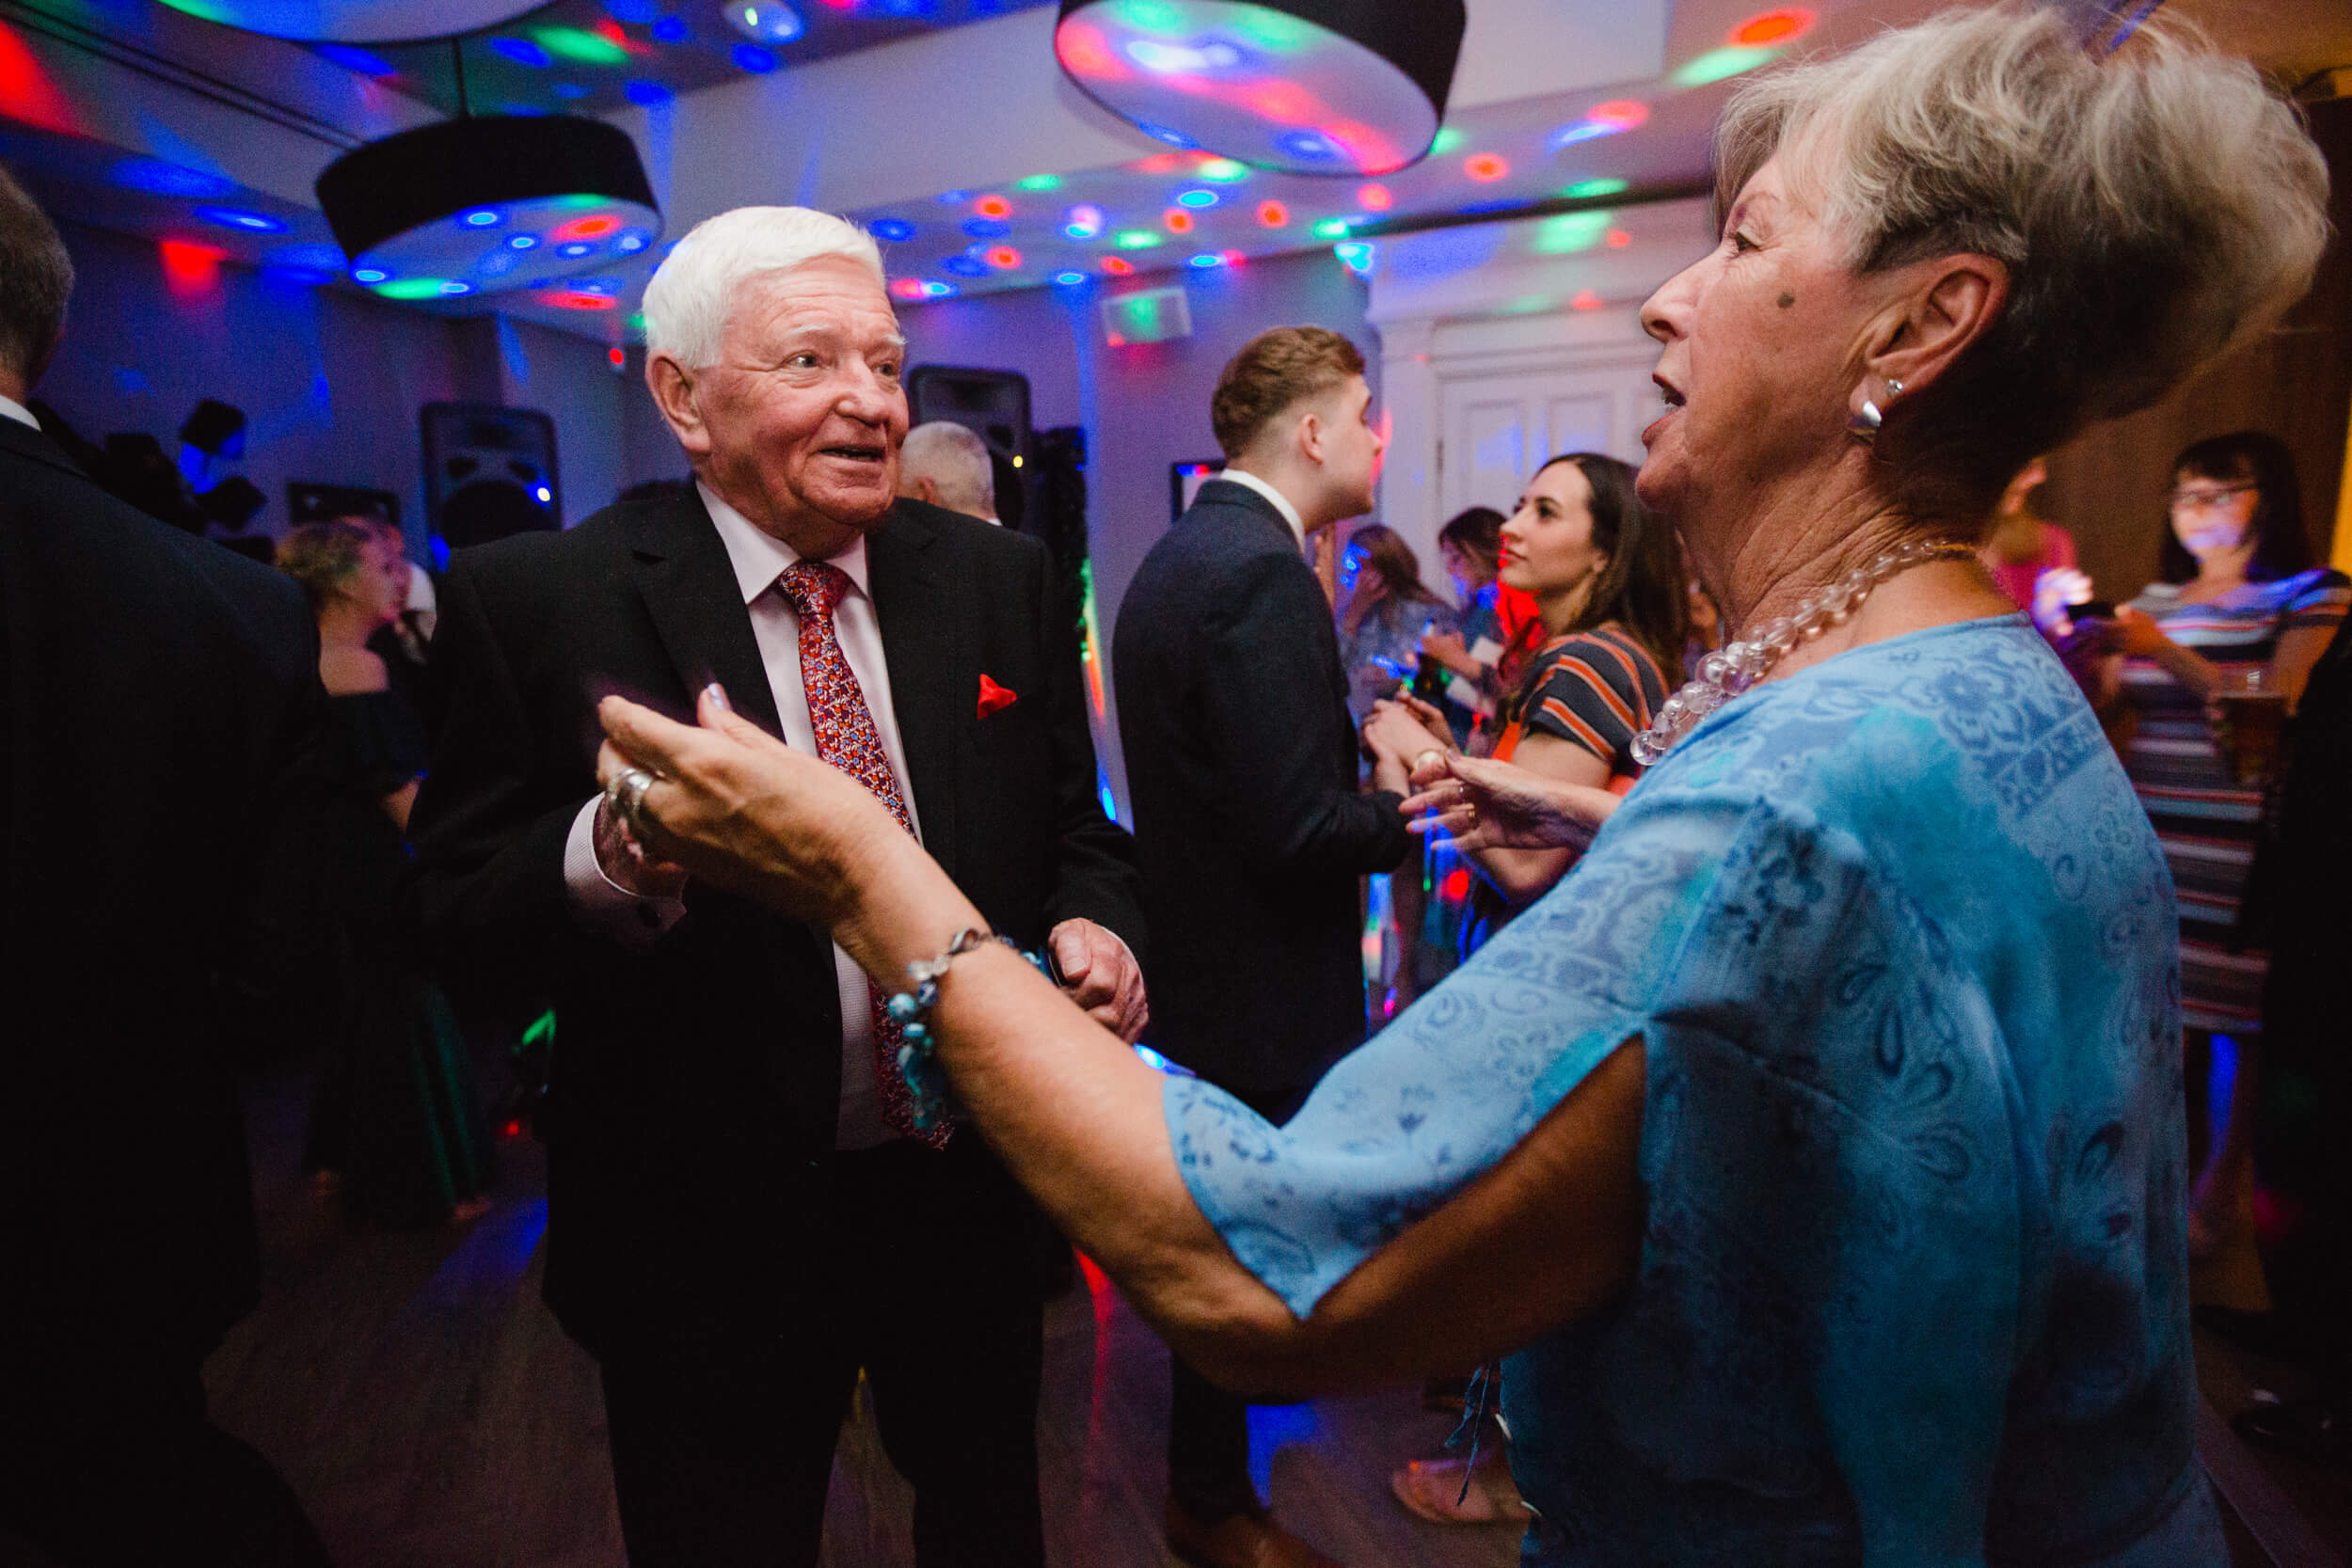 grandparents dancing together on dance floor at end of night